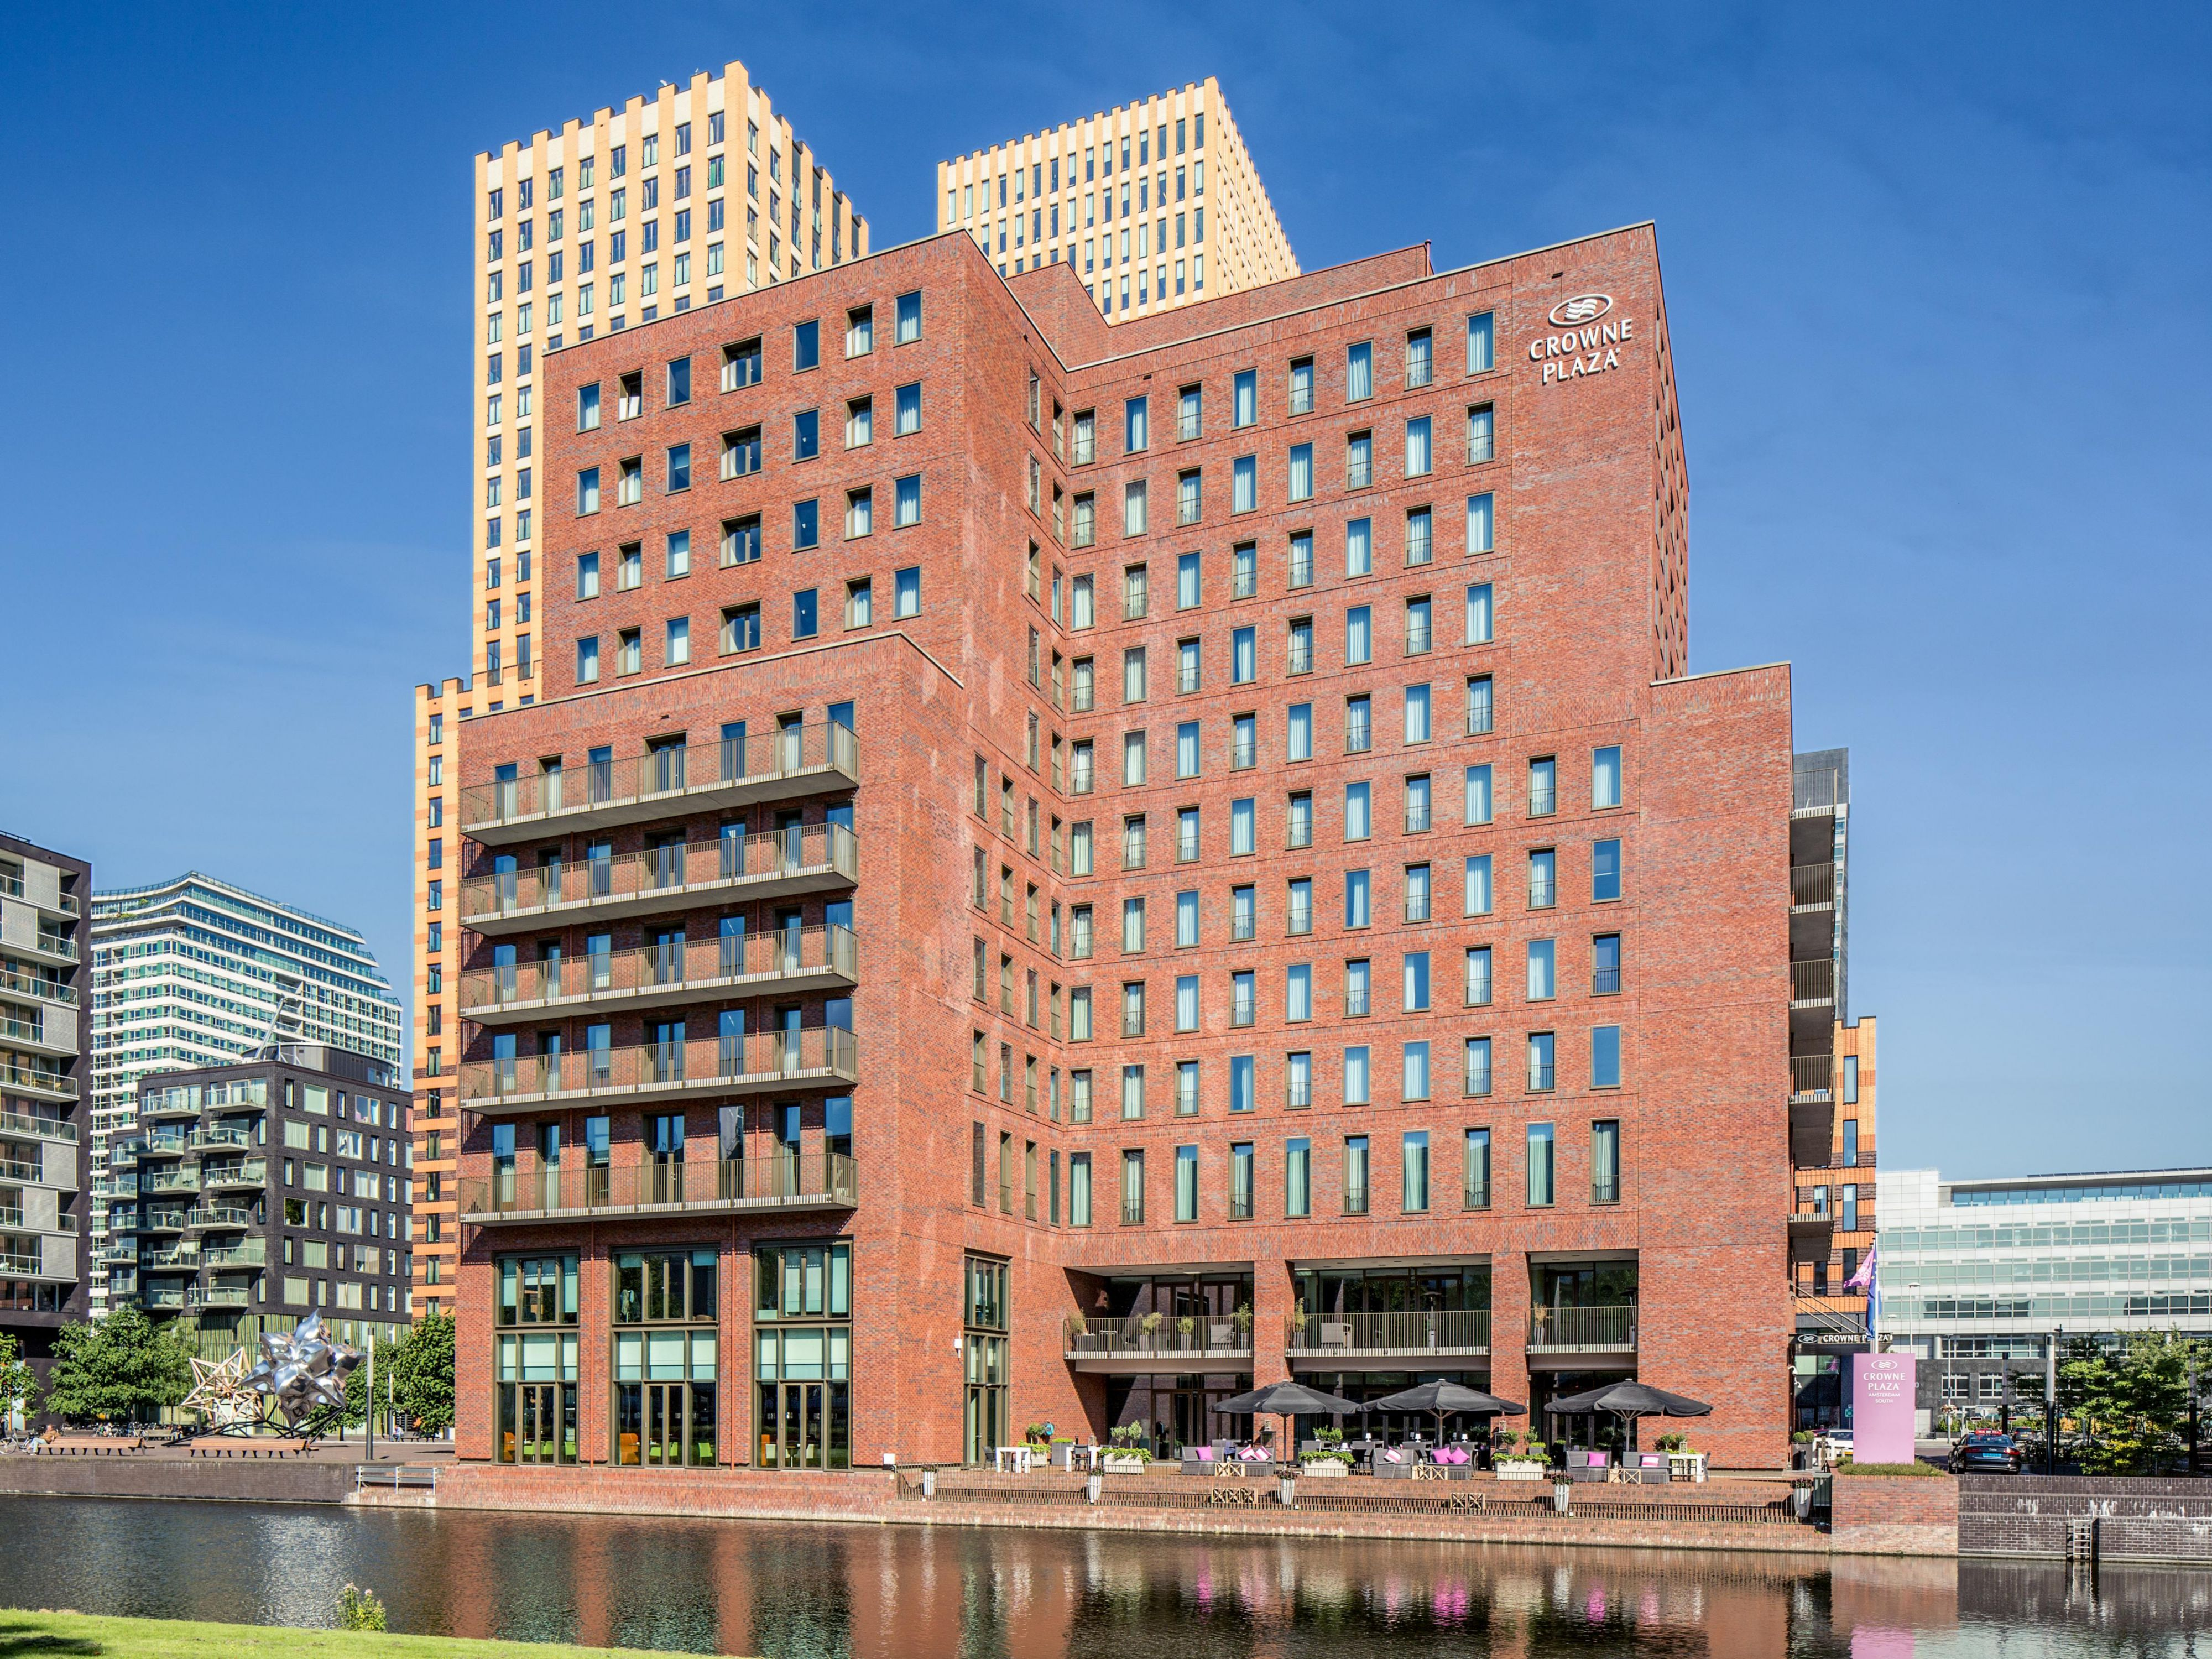 Crowne Plaza Amsterdam - South